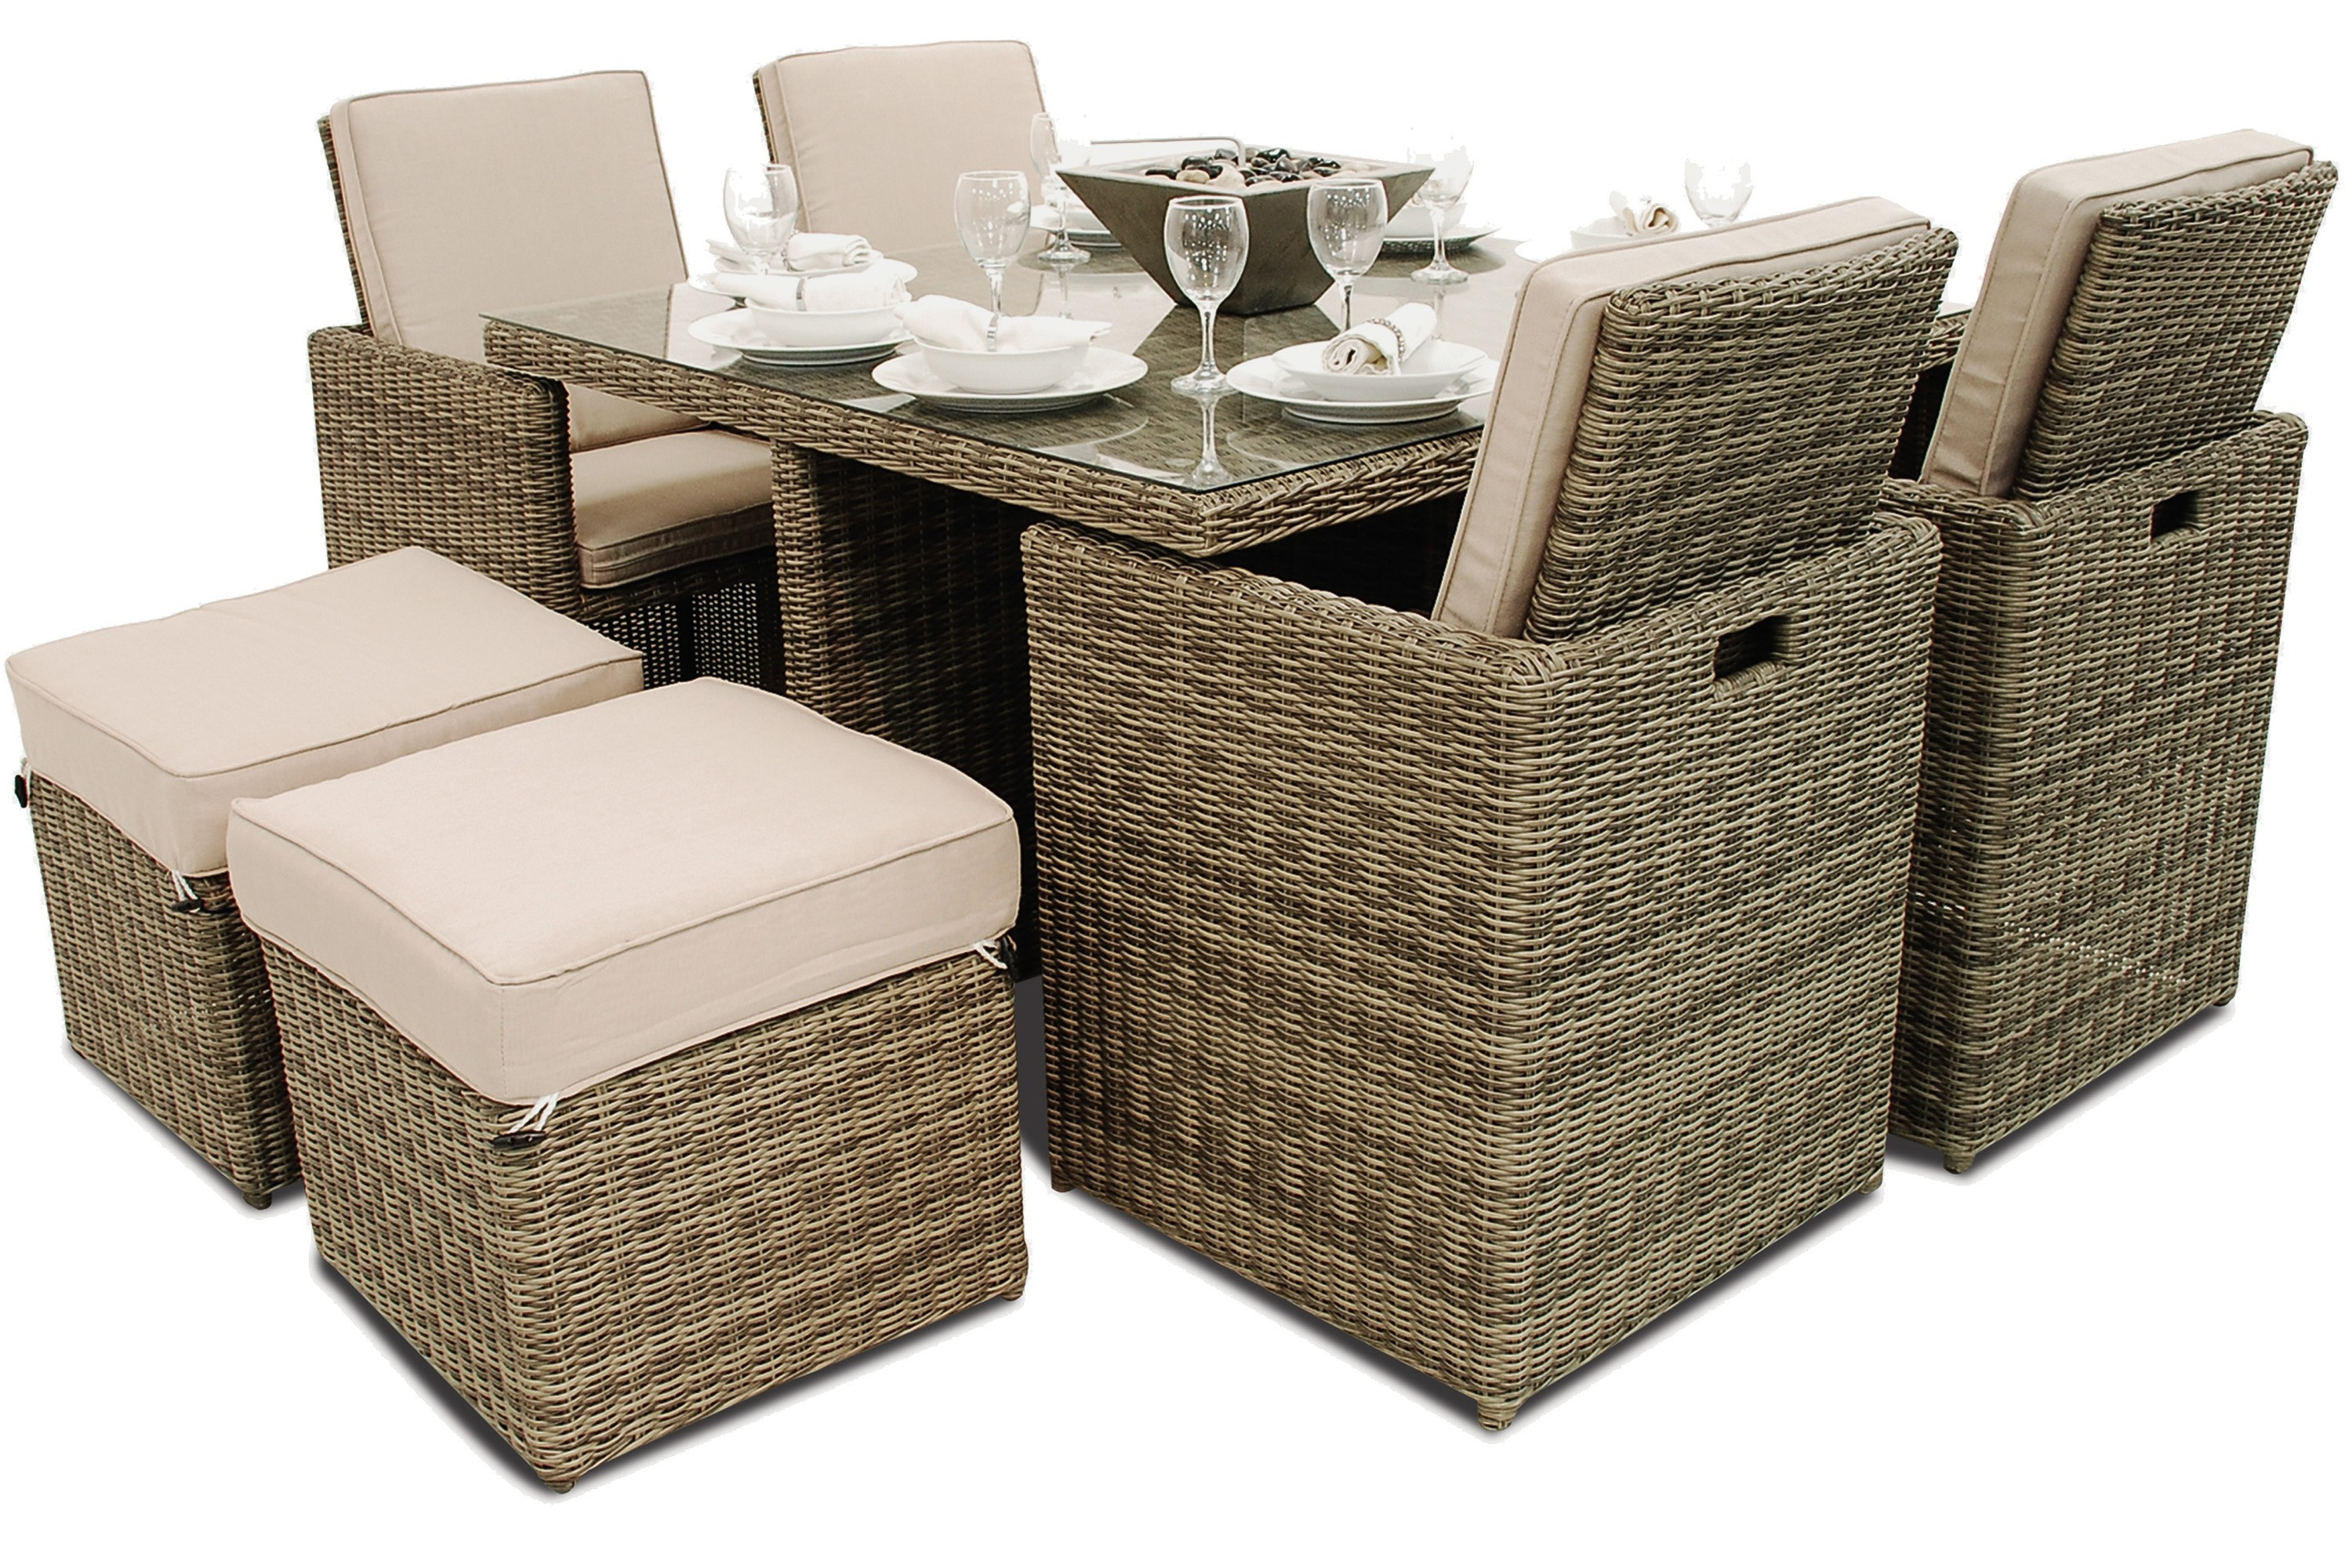 Maze Rattan Winchester 5 Piece Garden Furniture Cube Set